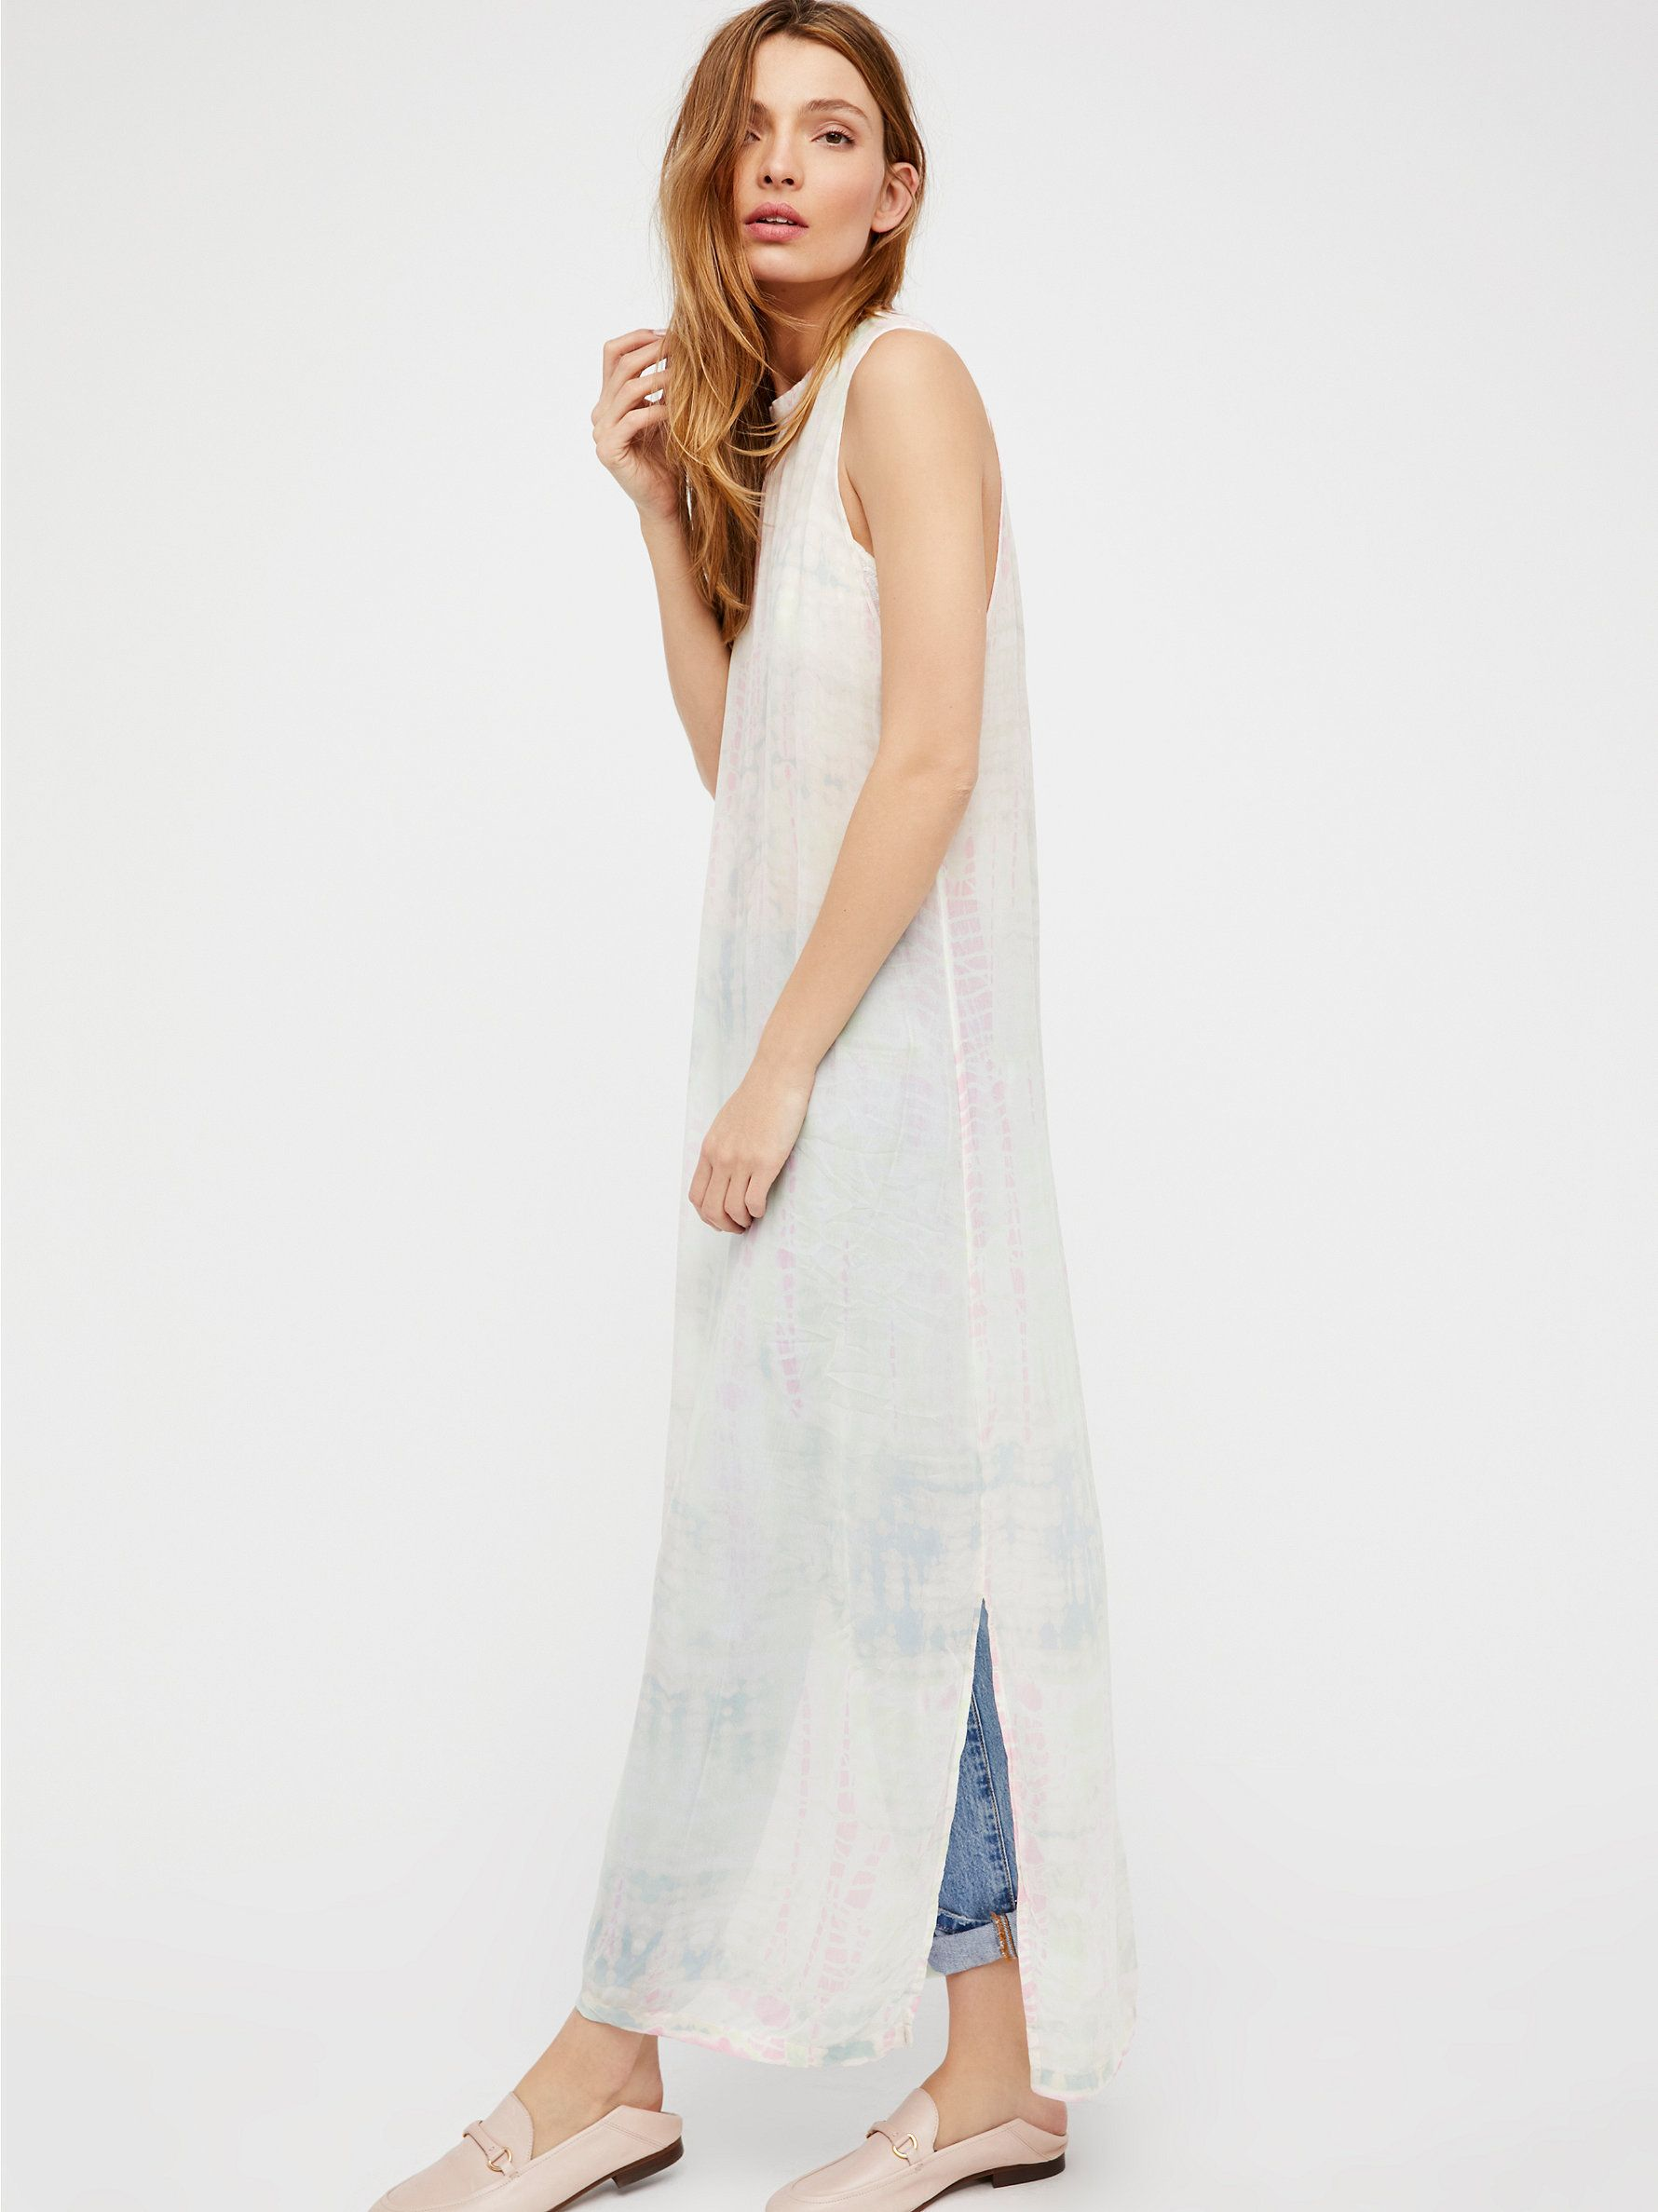 Dad's Shirt Dress | American made sheer tie-dye maxi dress featuring dropped armholes and side slits.     * Flowy silhouette.